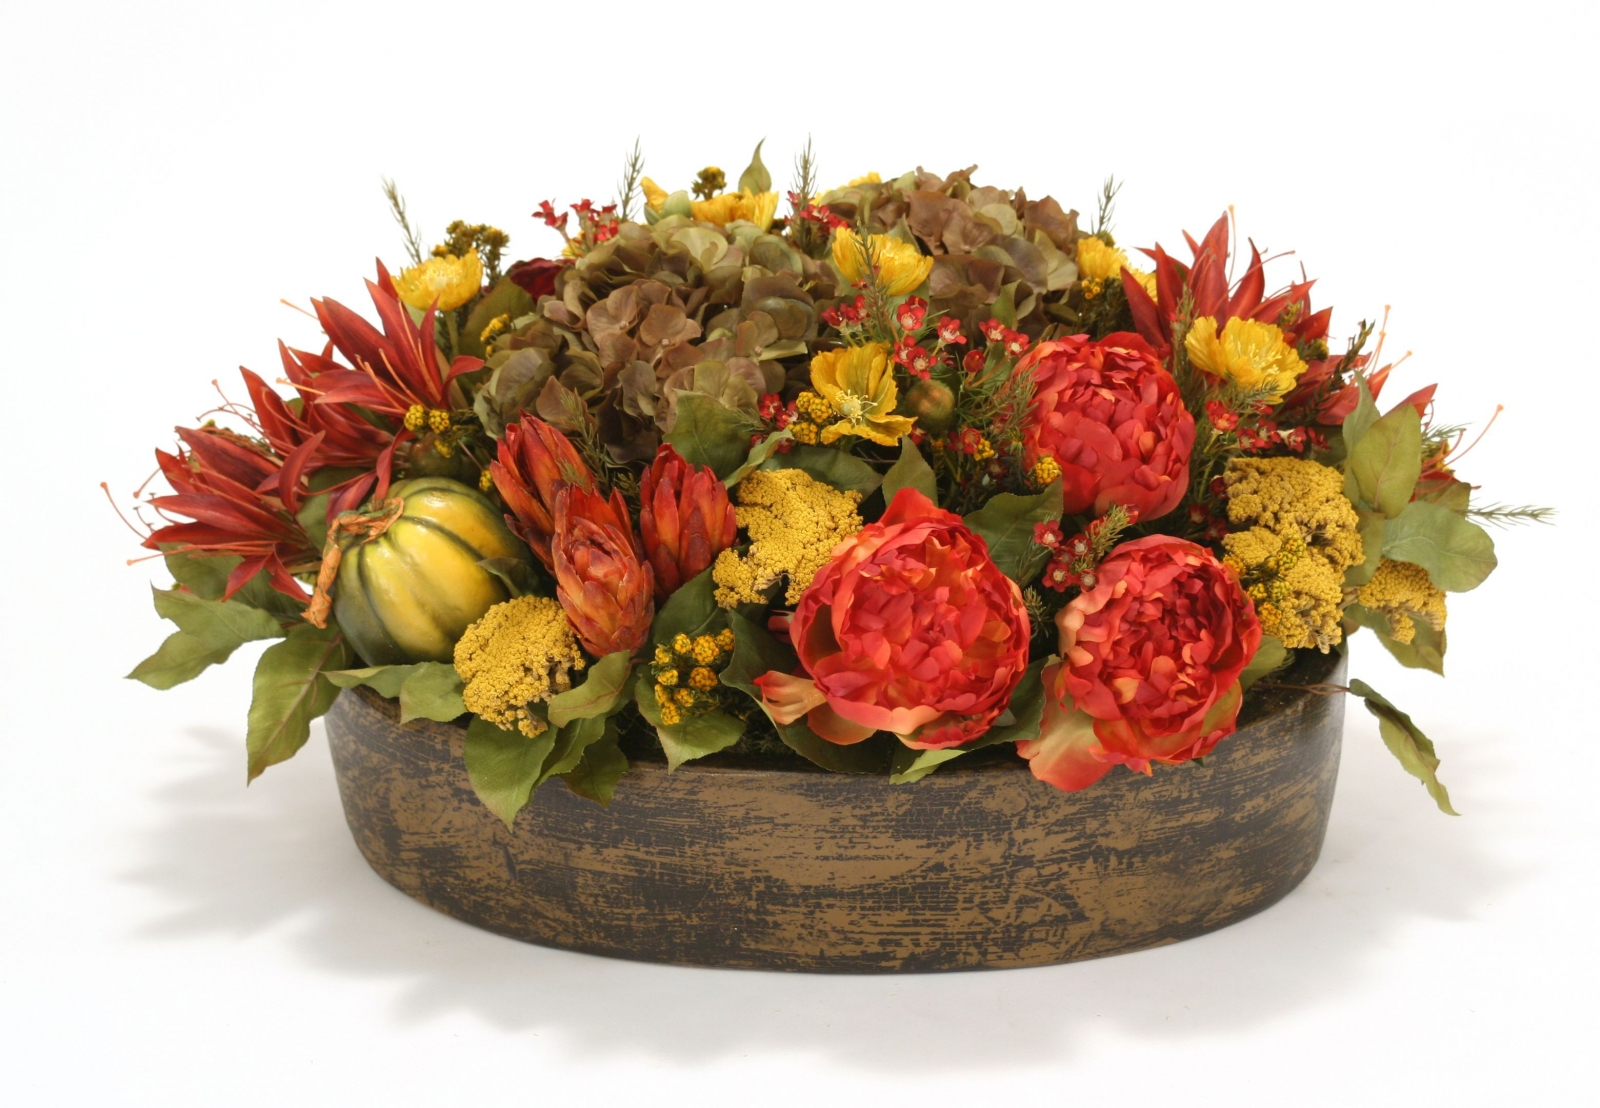 Autumn Meadow Mix in Oval Stone Pot